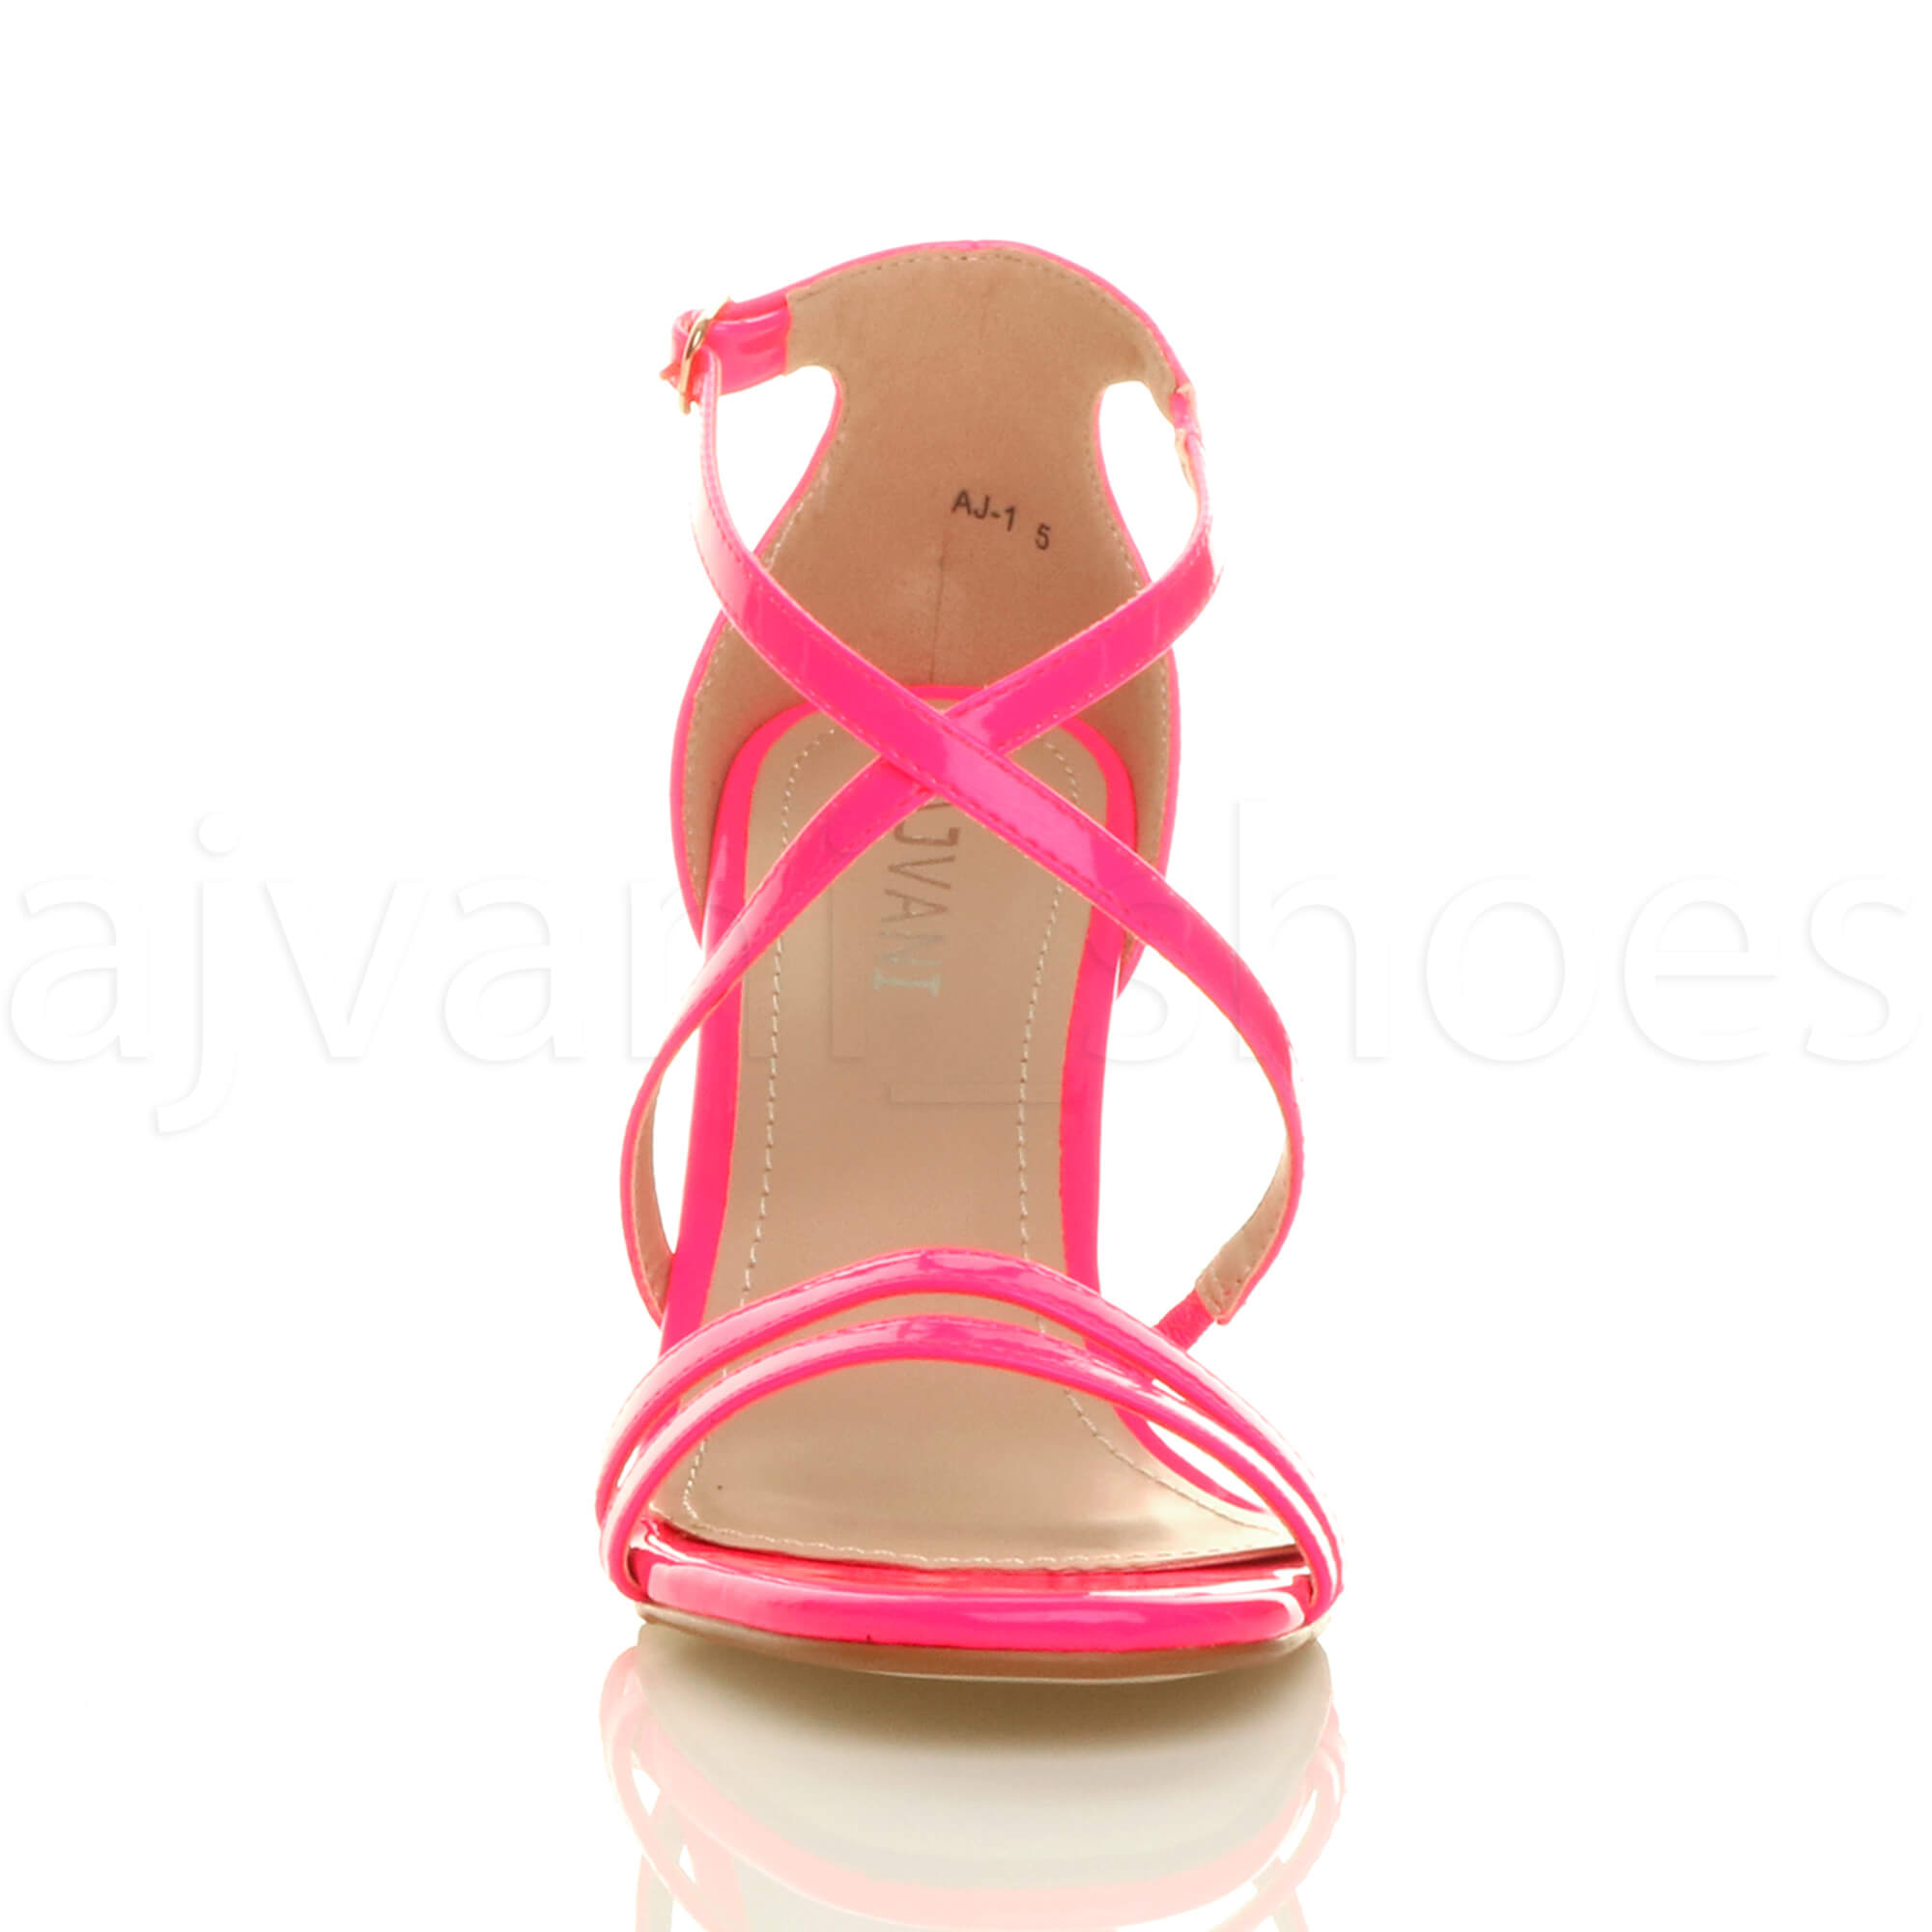 WOMENS-LADIES-MID-HIGH-HEEL-STRAPPY-CROSSOVER-WEDDING-PROM-SANDALS-SHOES-SIZE thumbnail 97